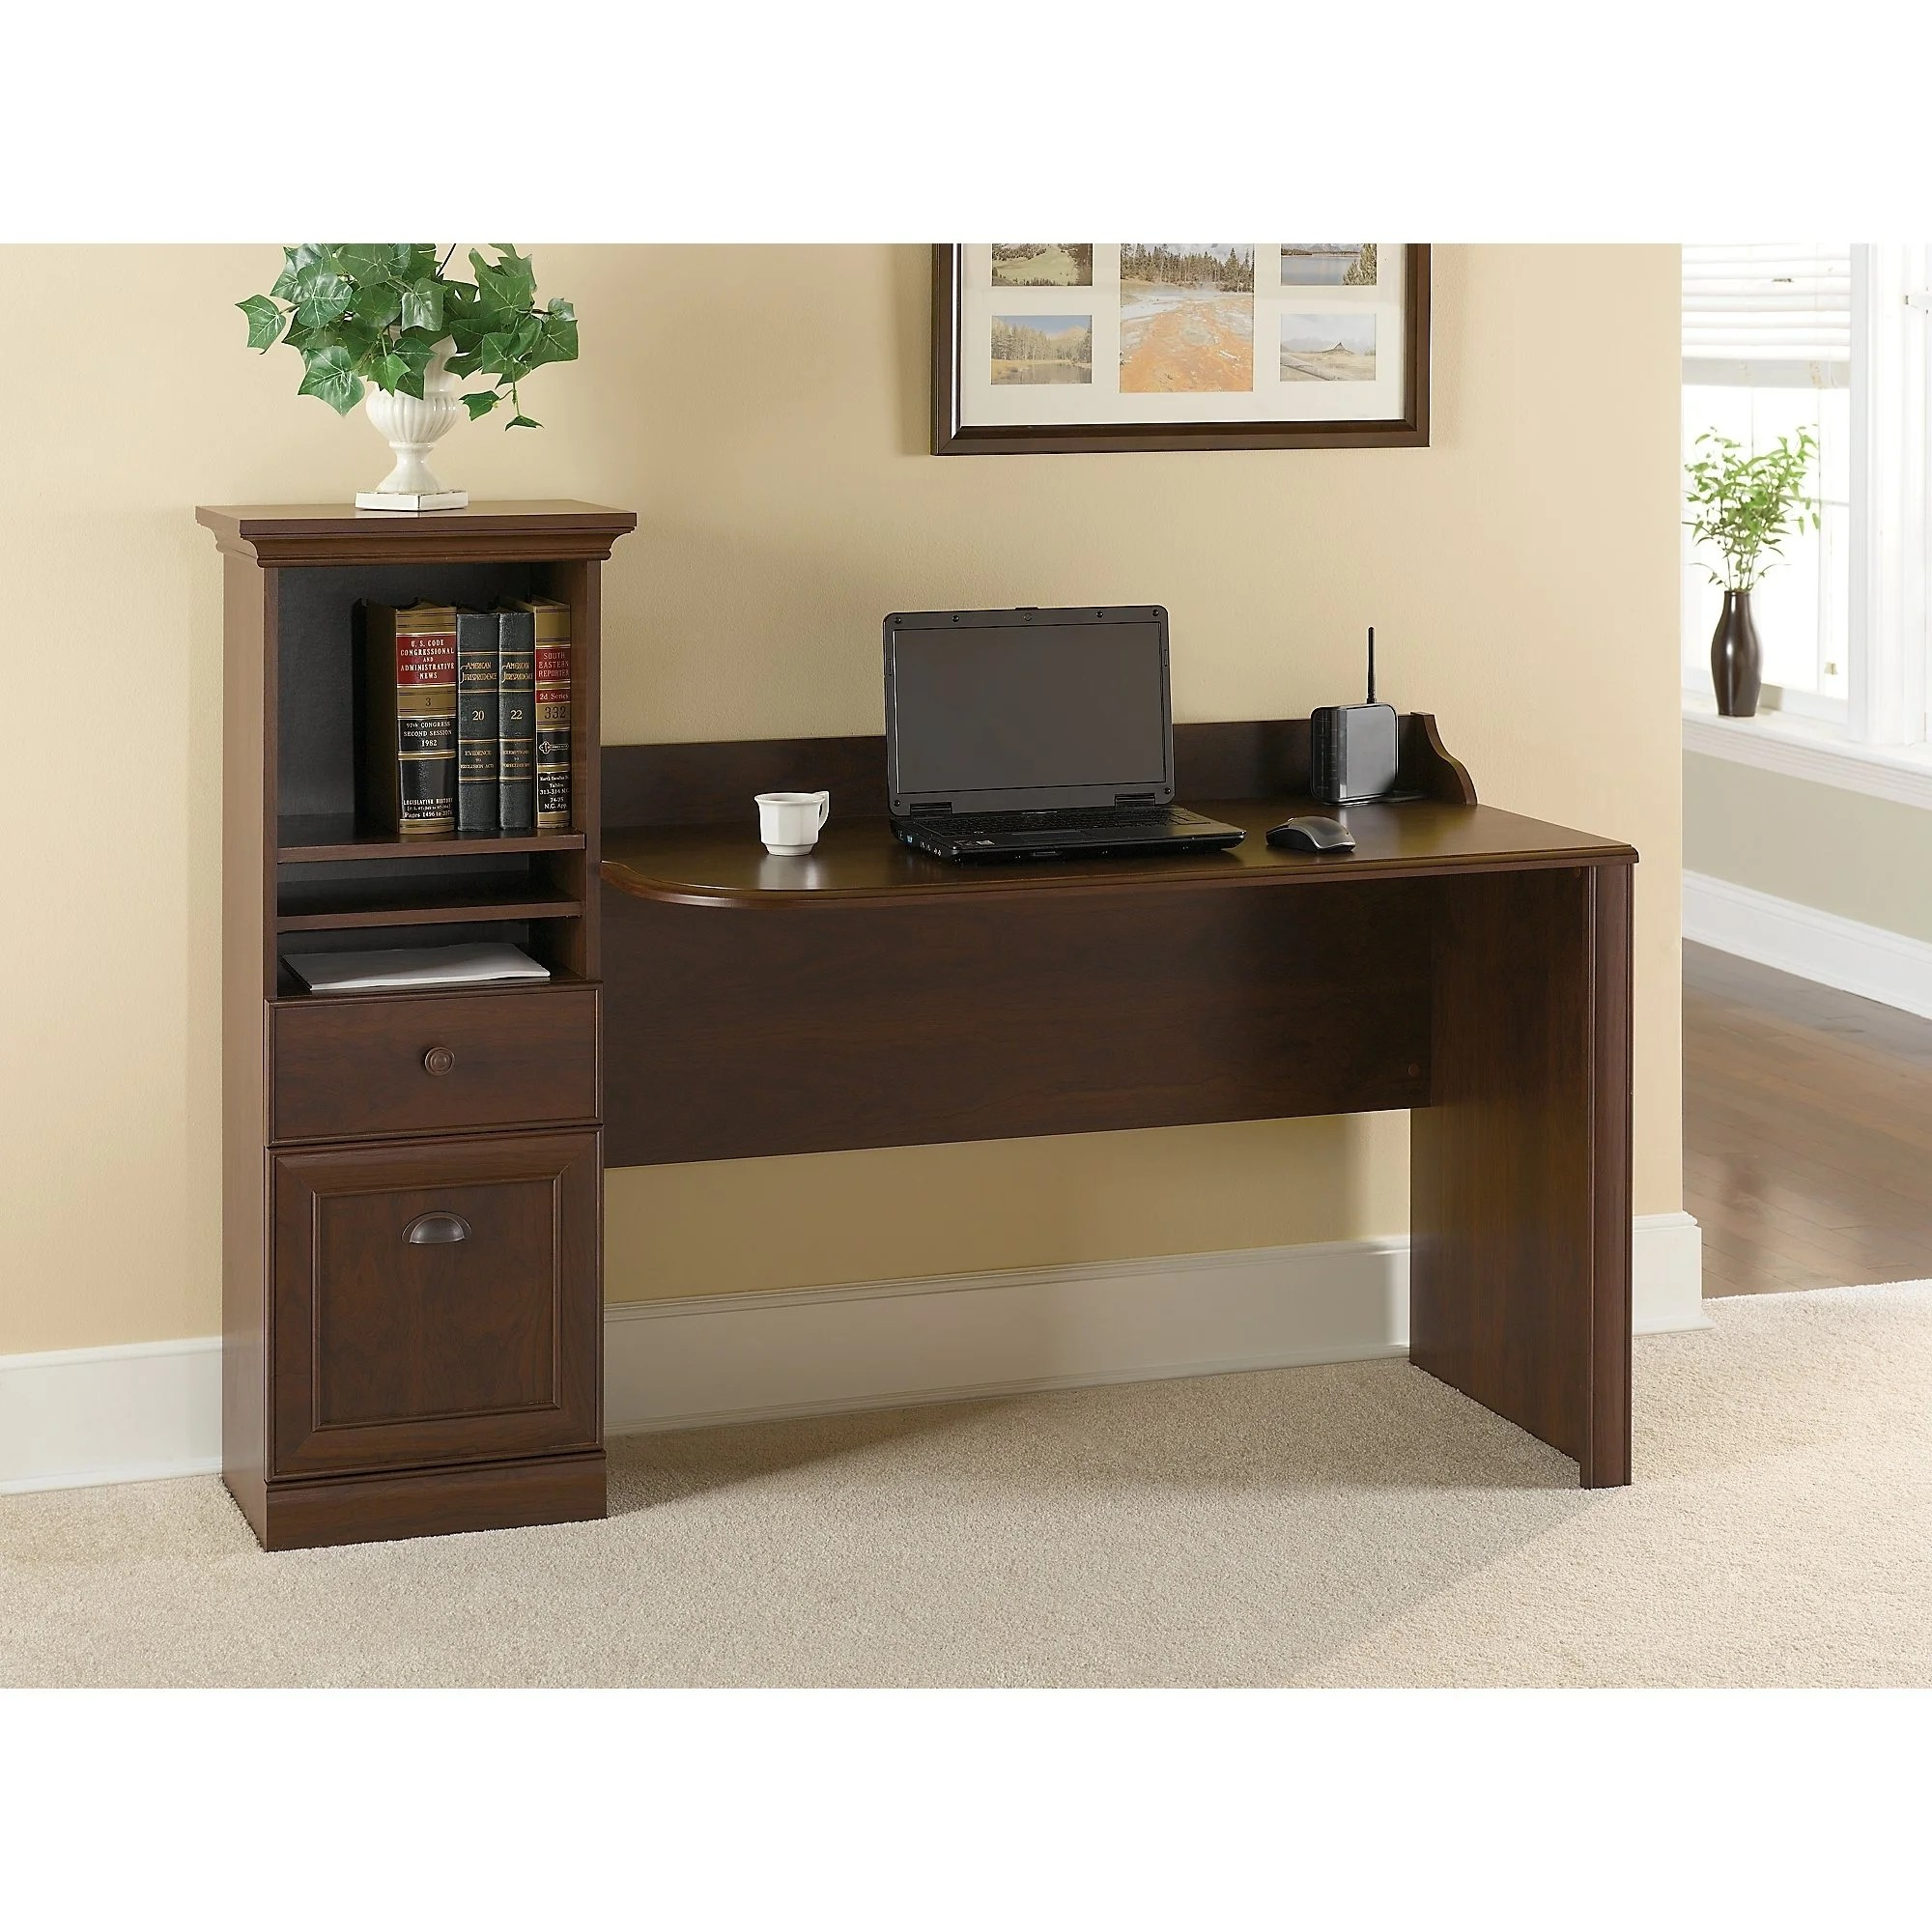 Workstation Furniture Bush Furniture Barton Computer Workstation Desk In Bing Cherry